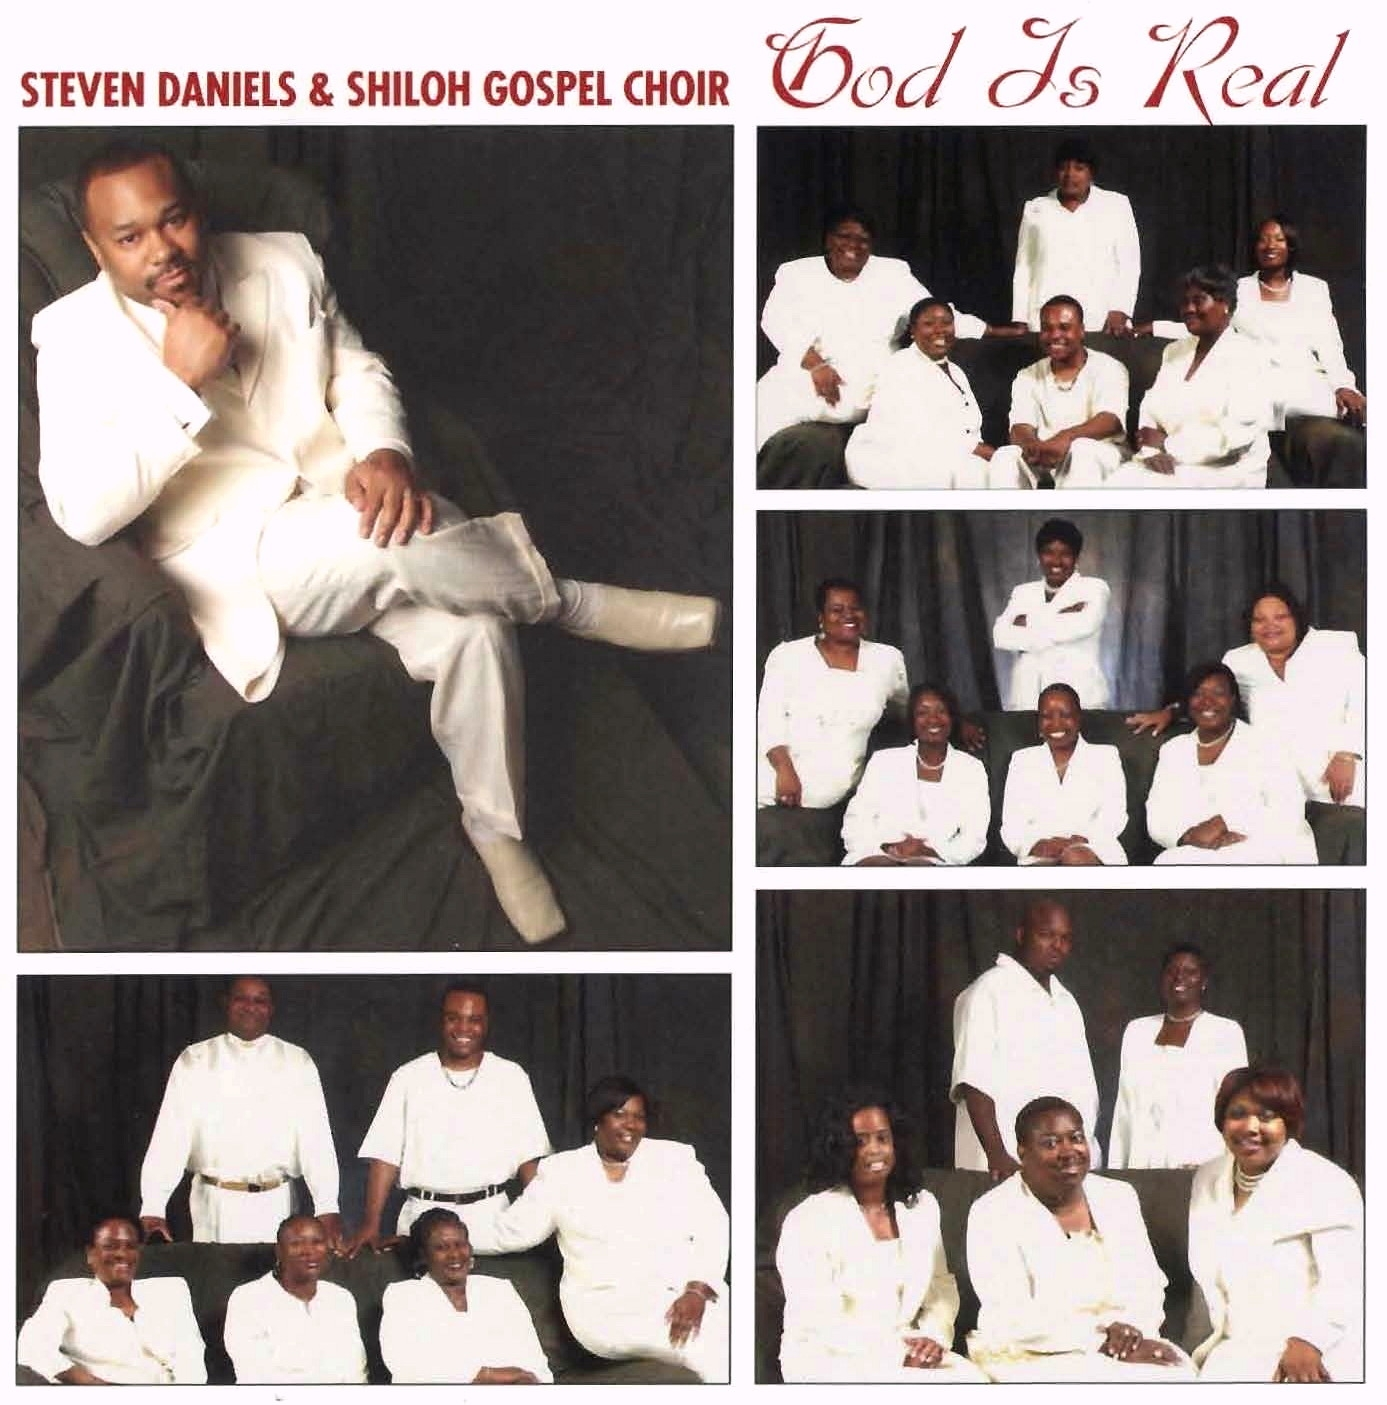 God Is Real CD Cover